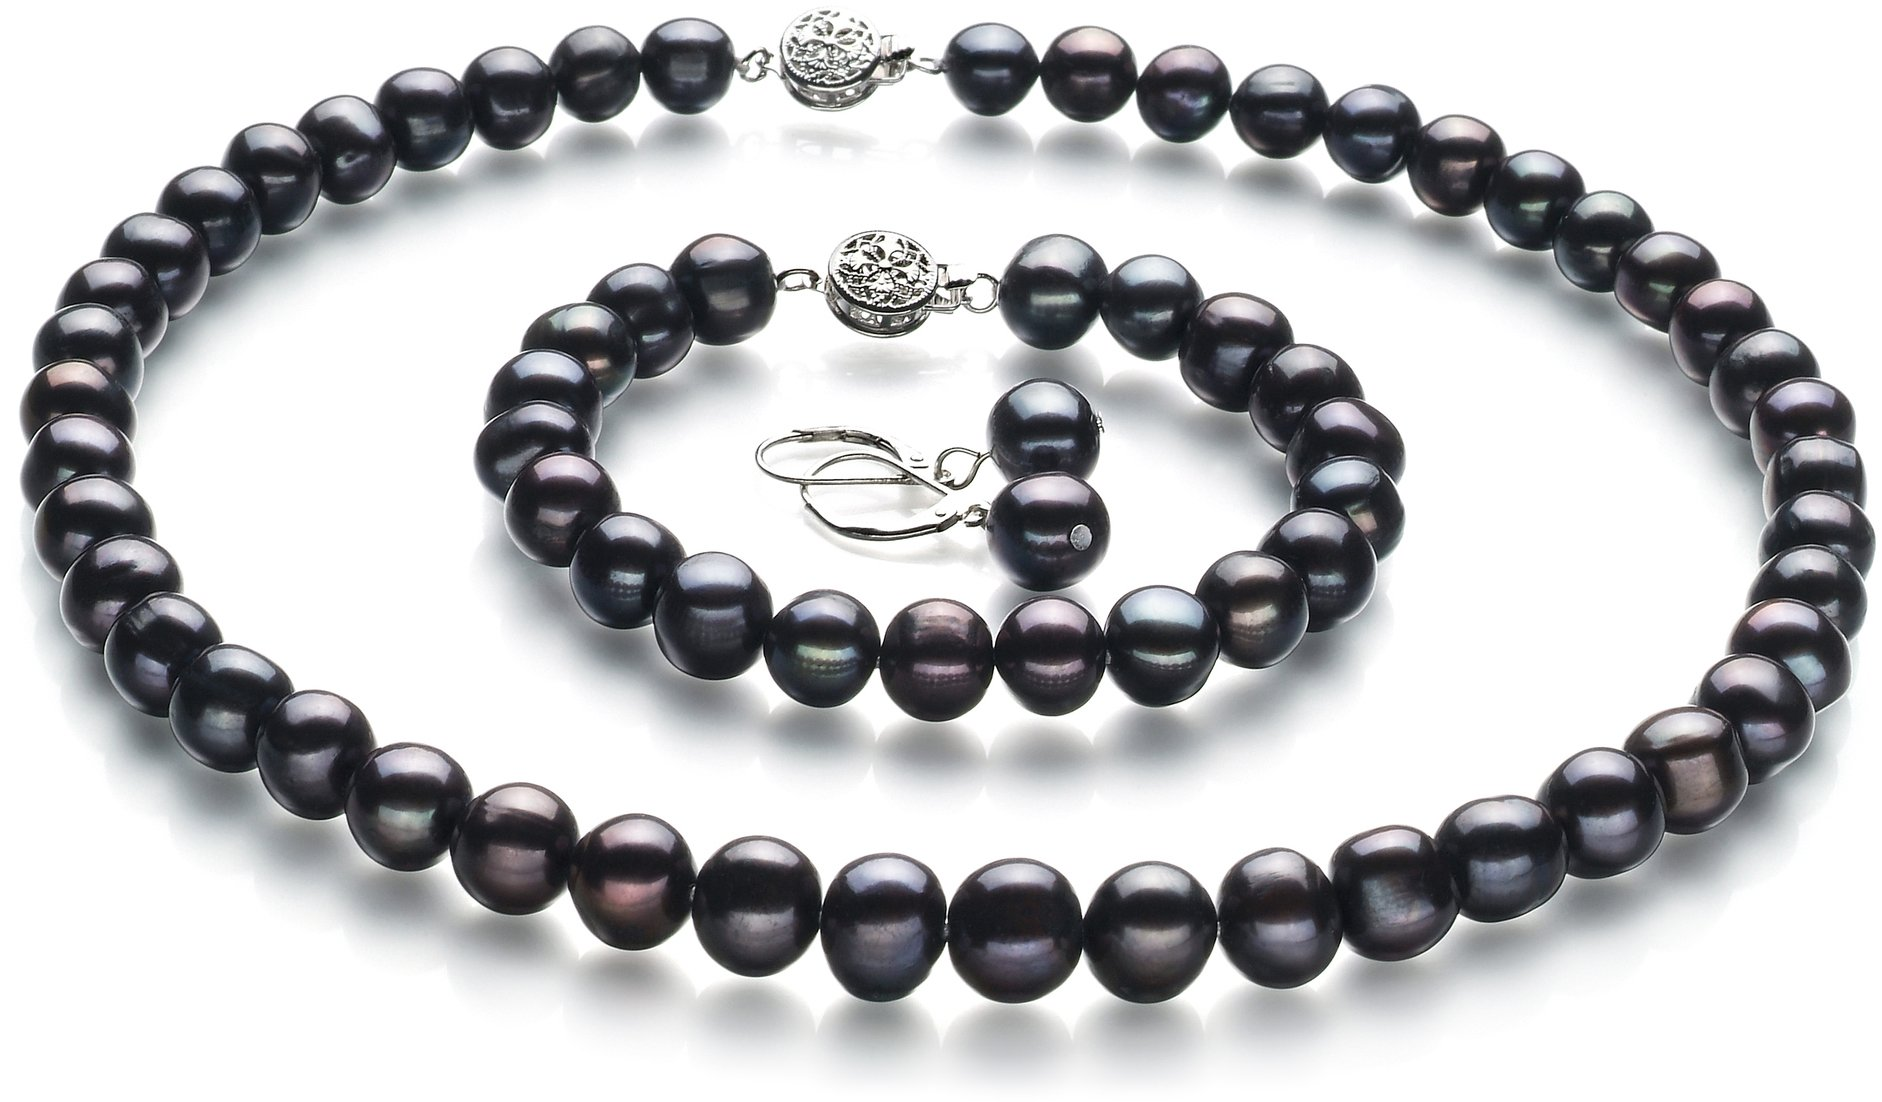 PearlsOnly - Kaitlyn Black 8-9mm A Quality Freshwater Cultured Pearl Set-16 in Chocker length